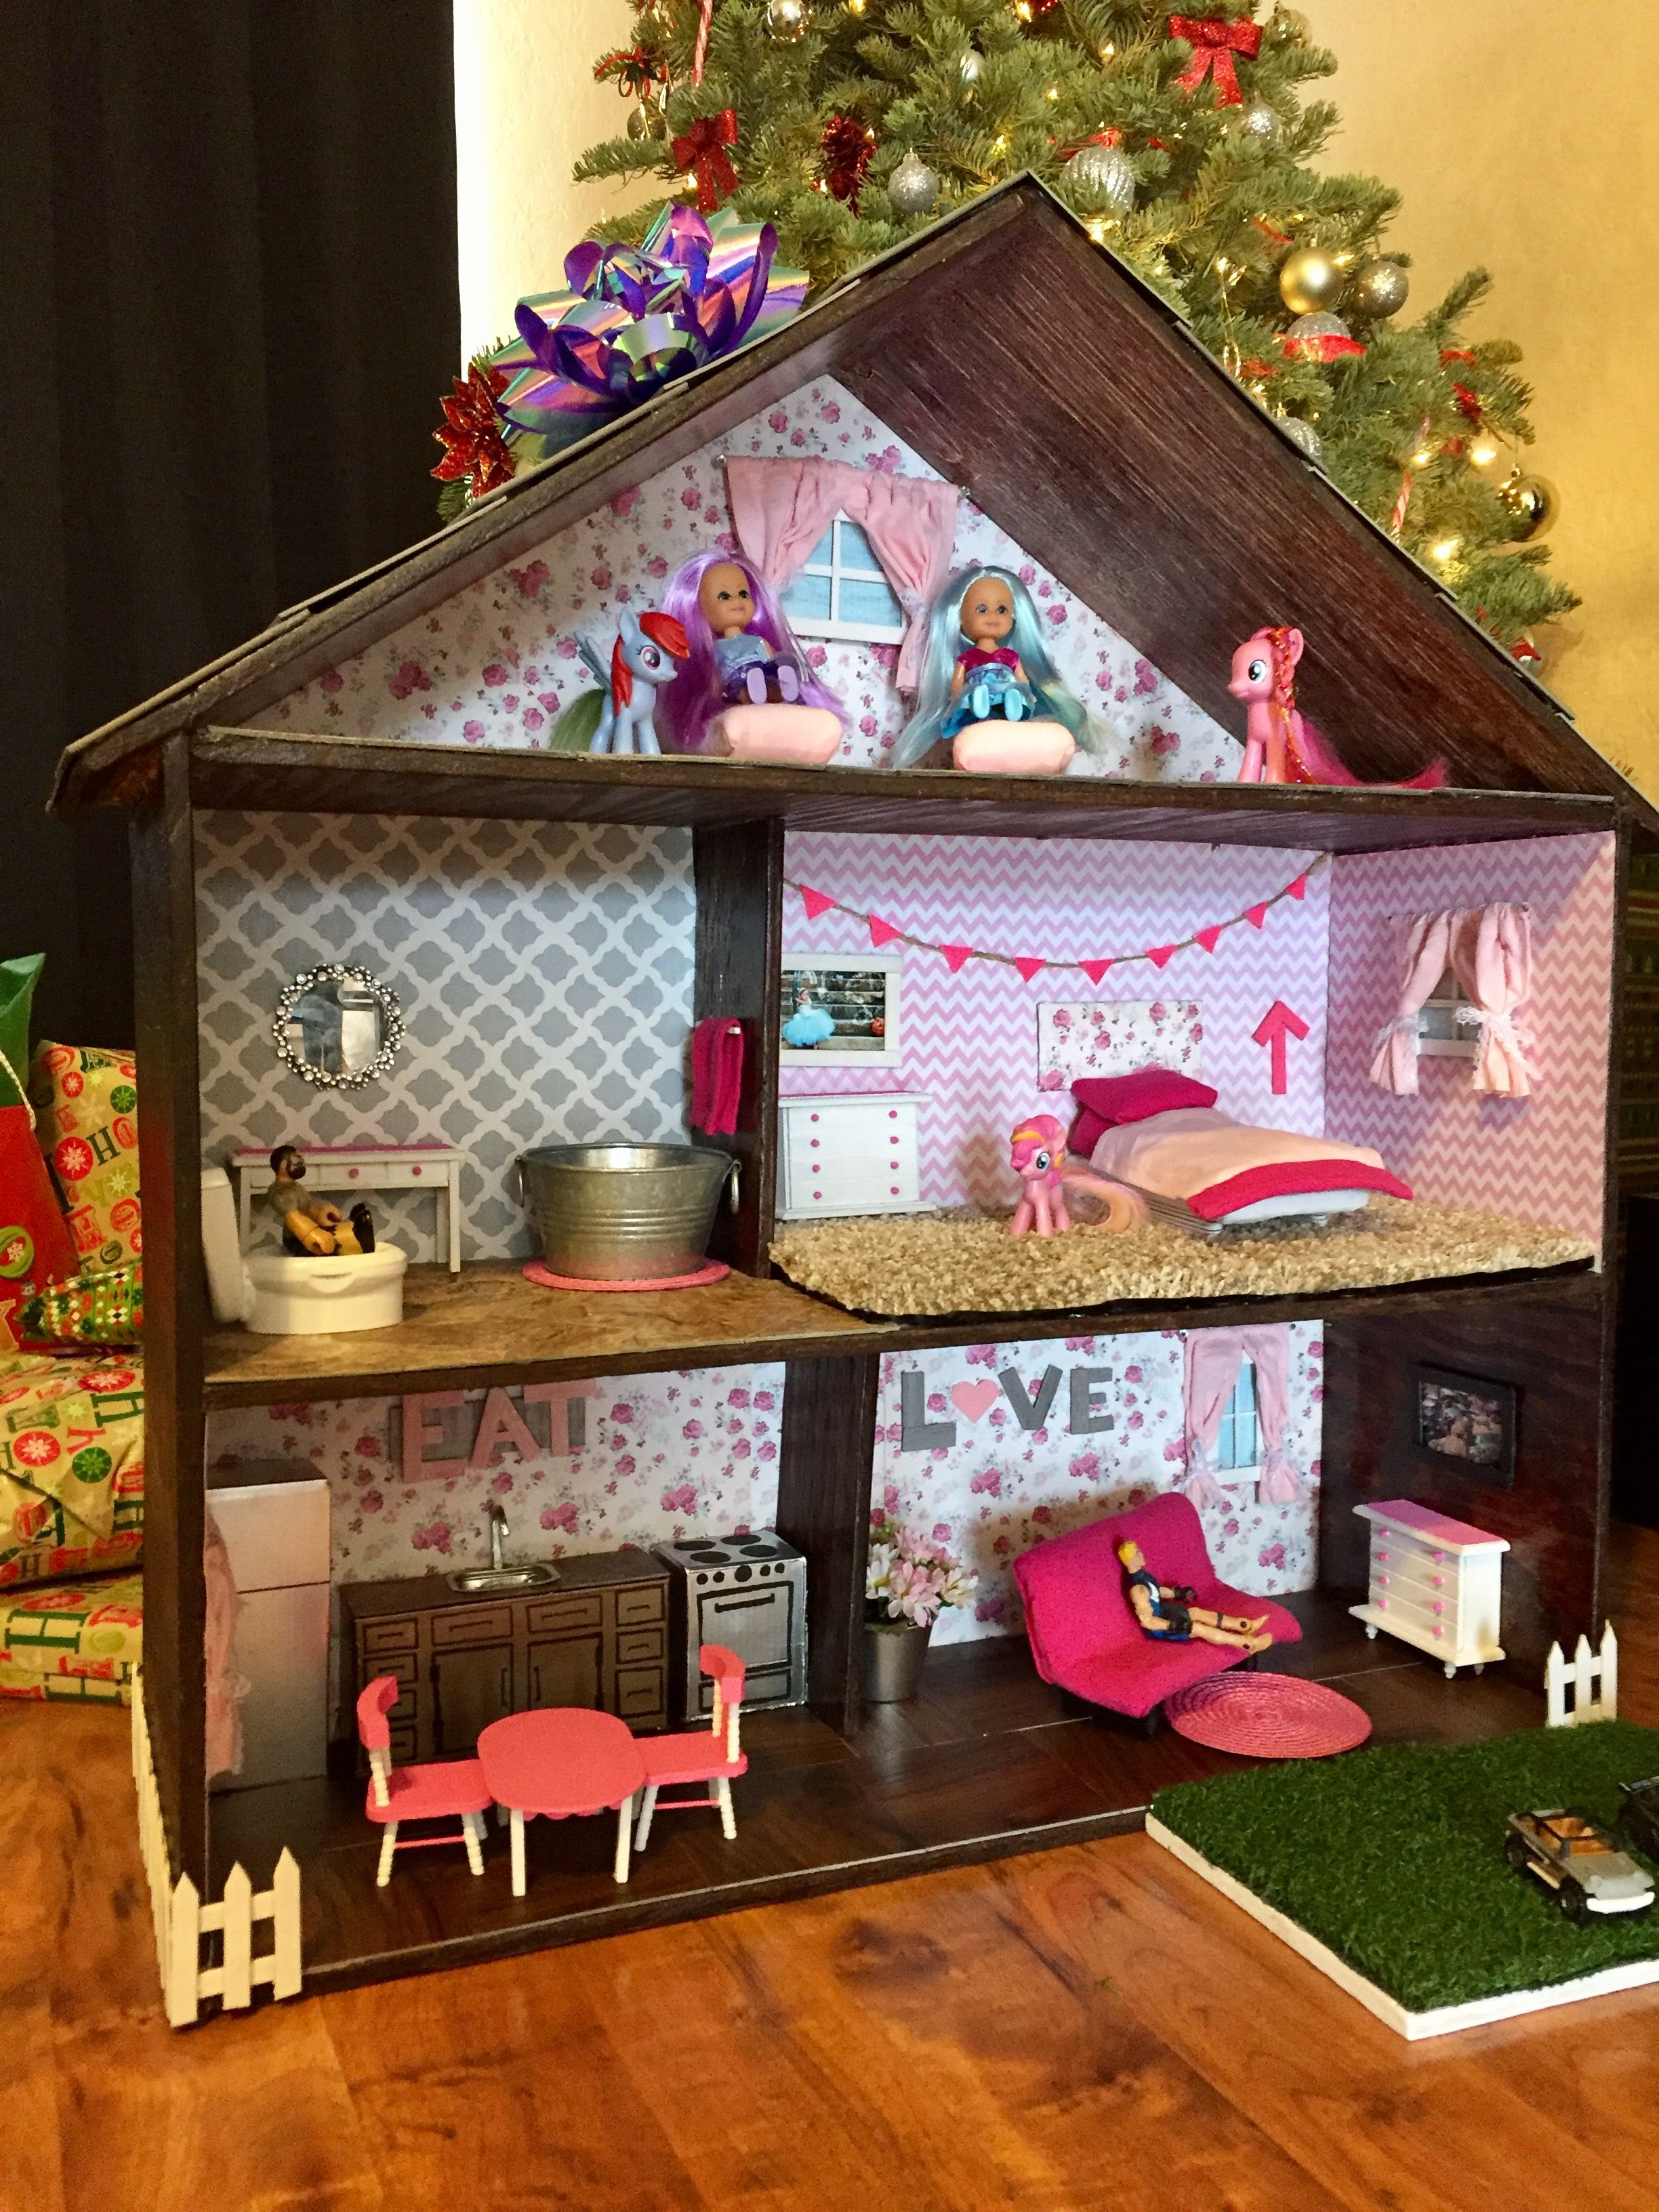 Shoe Box Dollhouse Craft For Kids: Homemade DIY Dollhouse. Under $40 Home Depot Samples